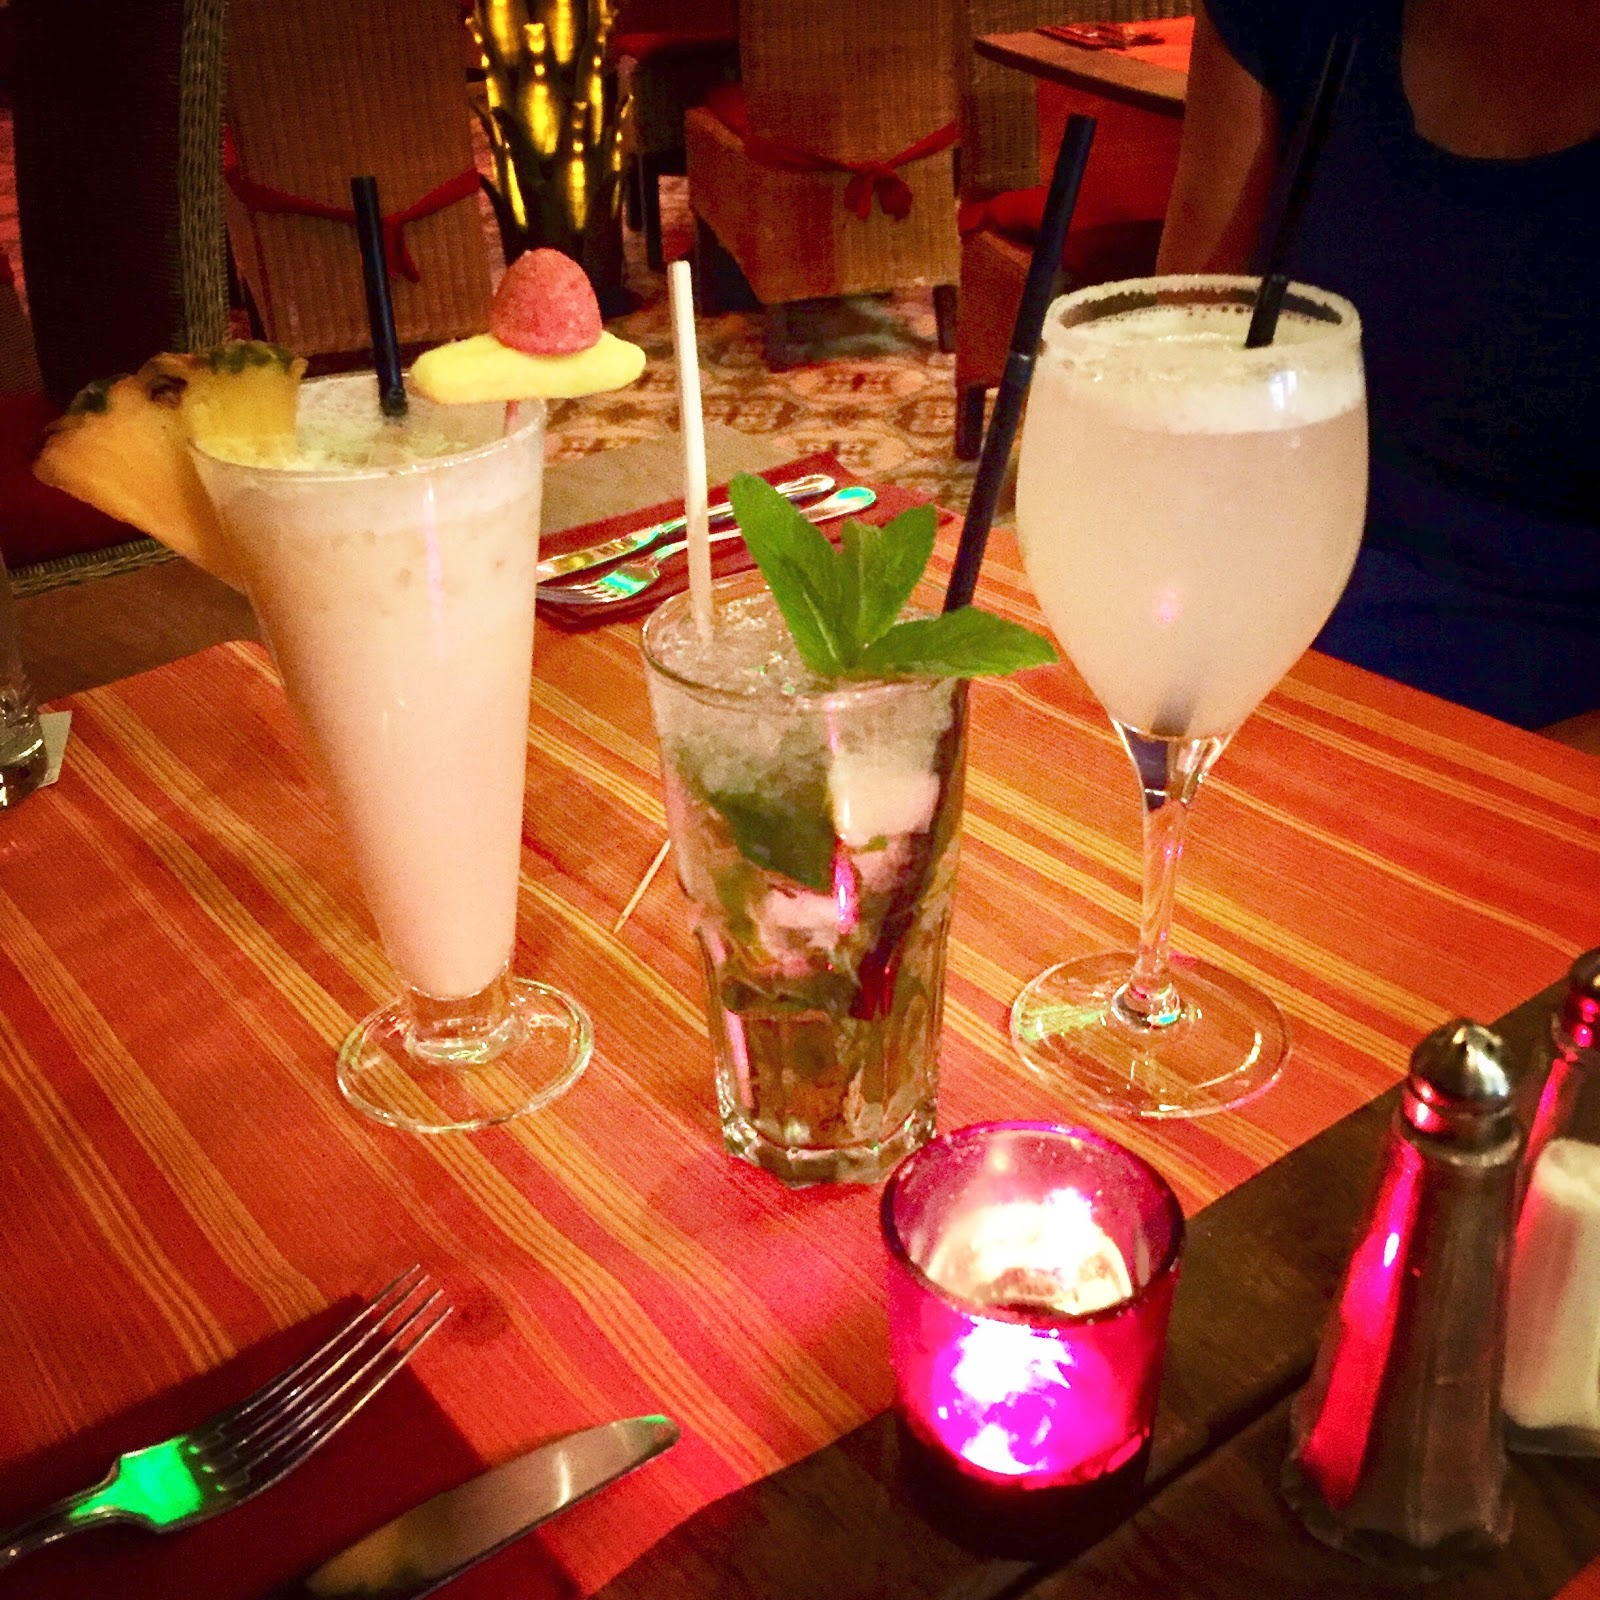 My companions declared their Margaritas and Piña Coladas good drinks too:   L: Piña Colada, R: Margarita